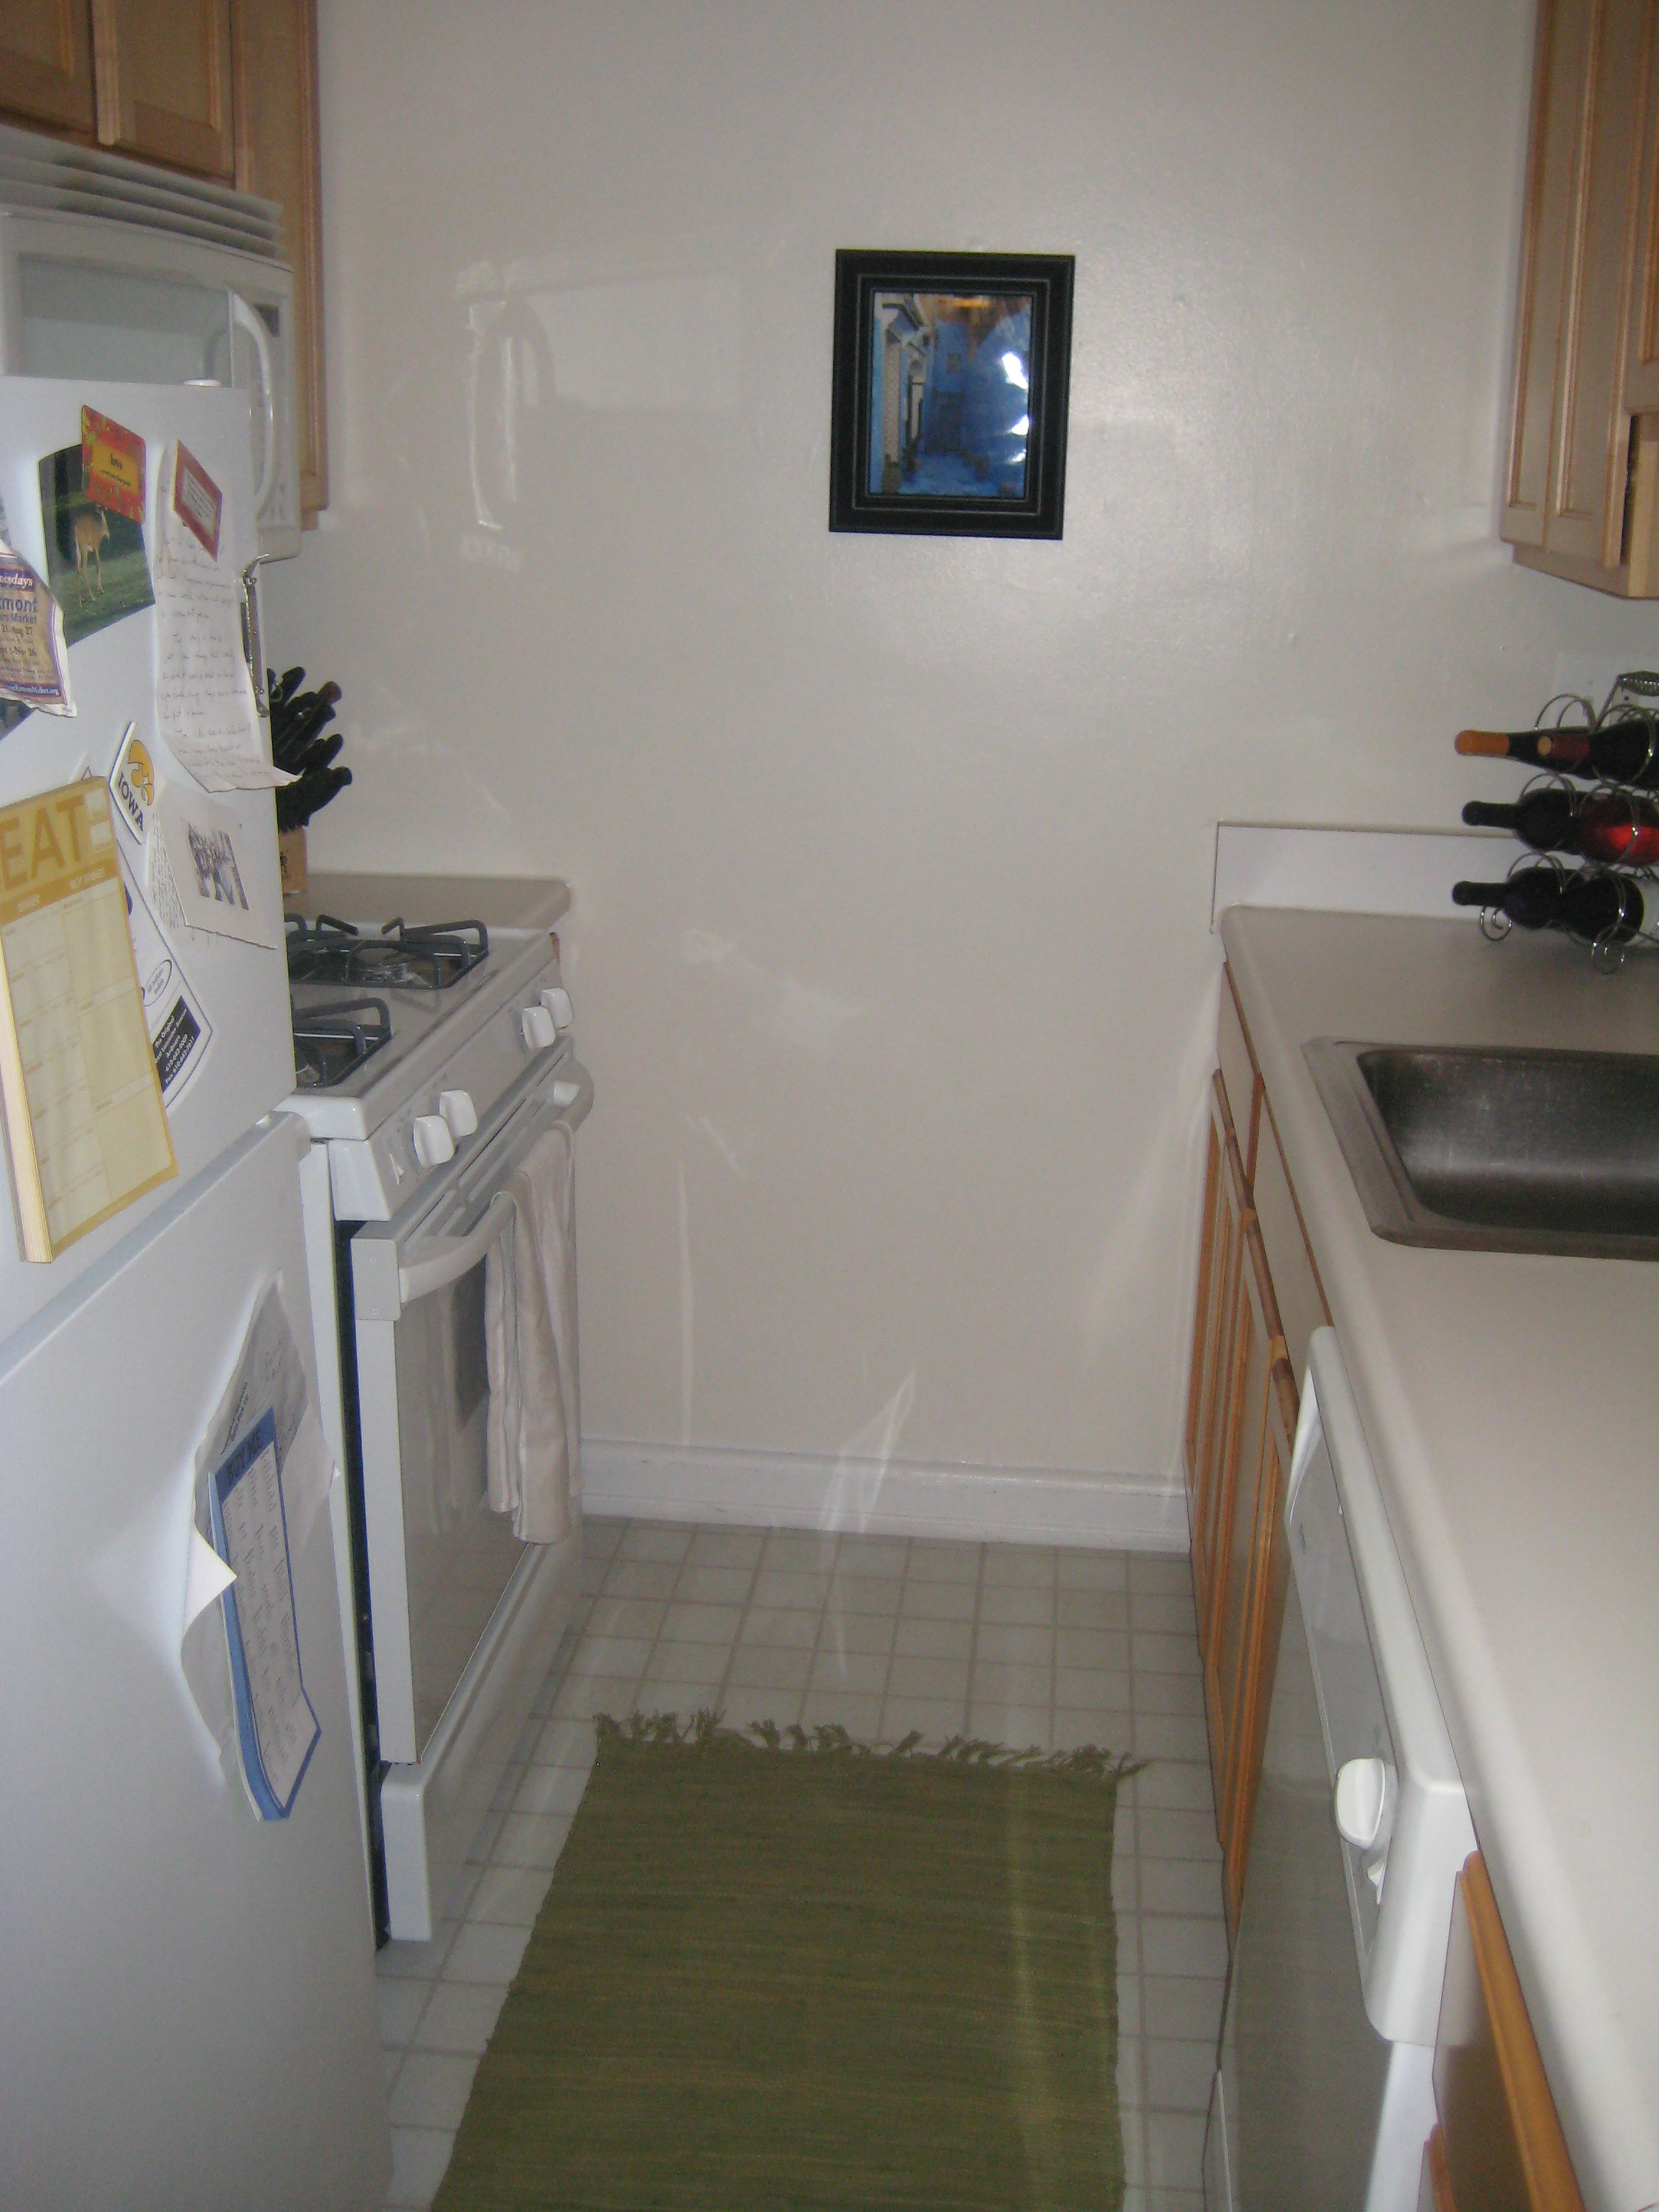 4th,moving,apt 062